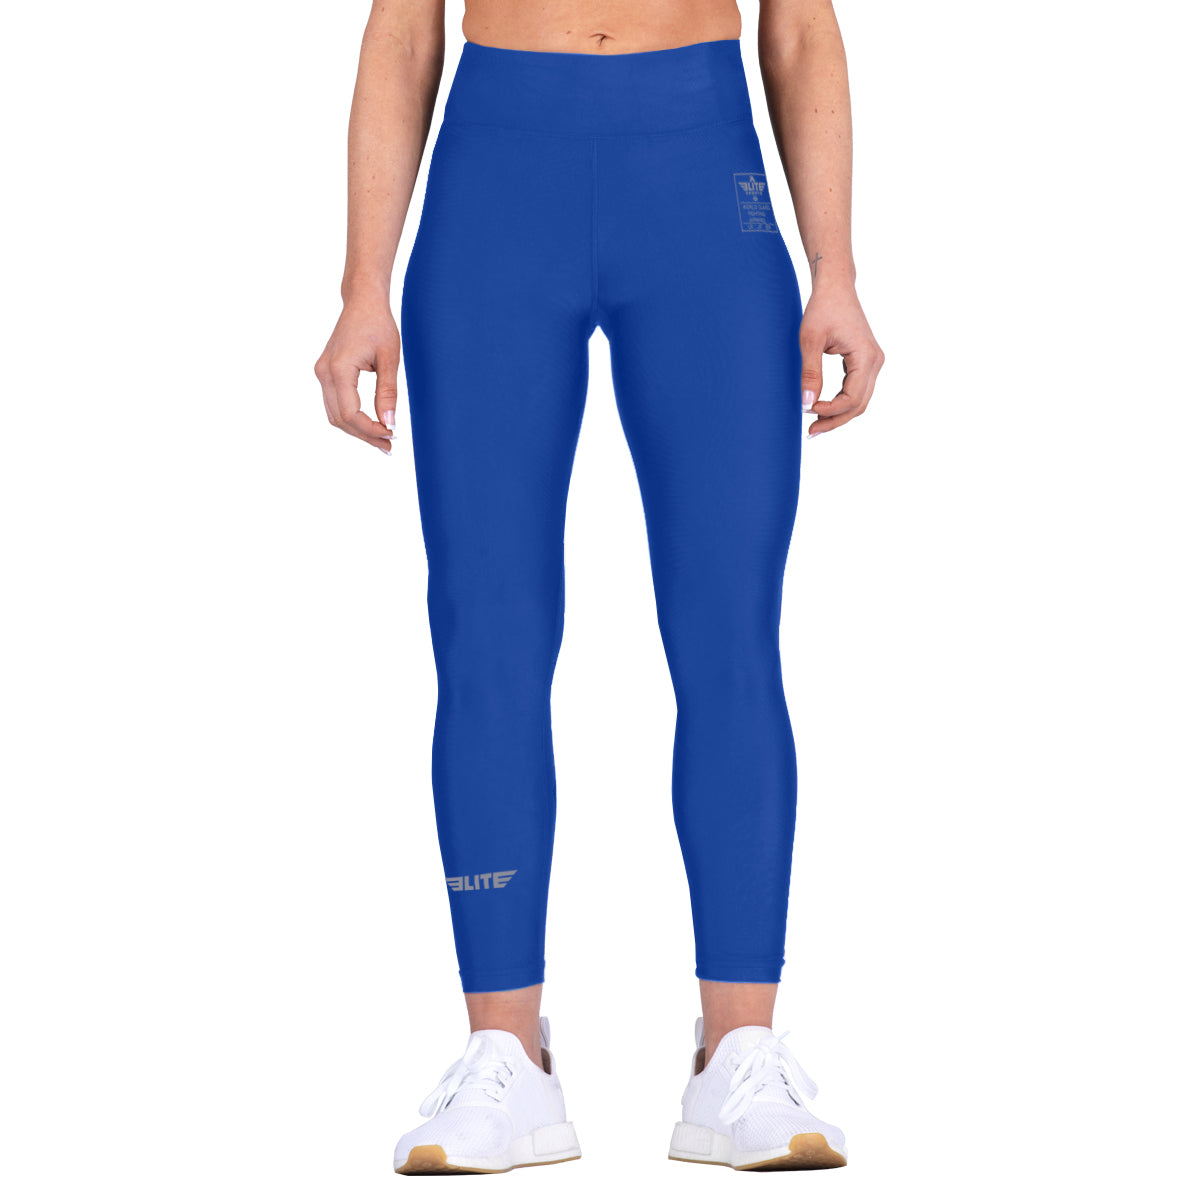 Elite Sports Blue Women Compression Karate Spat Pants